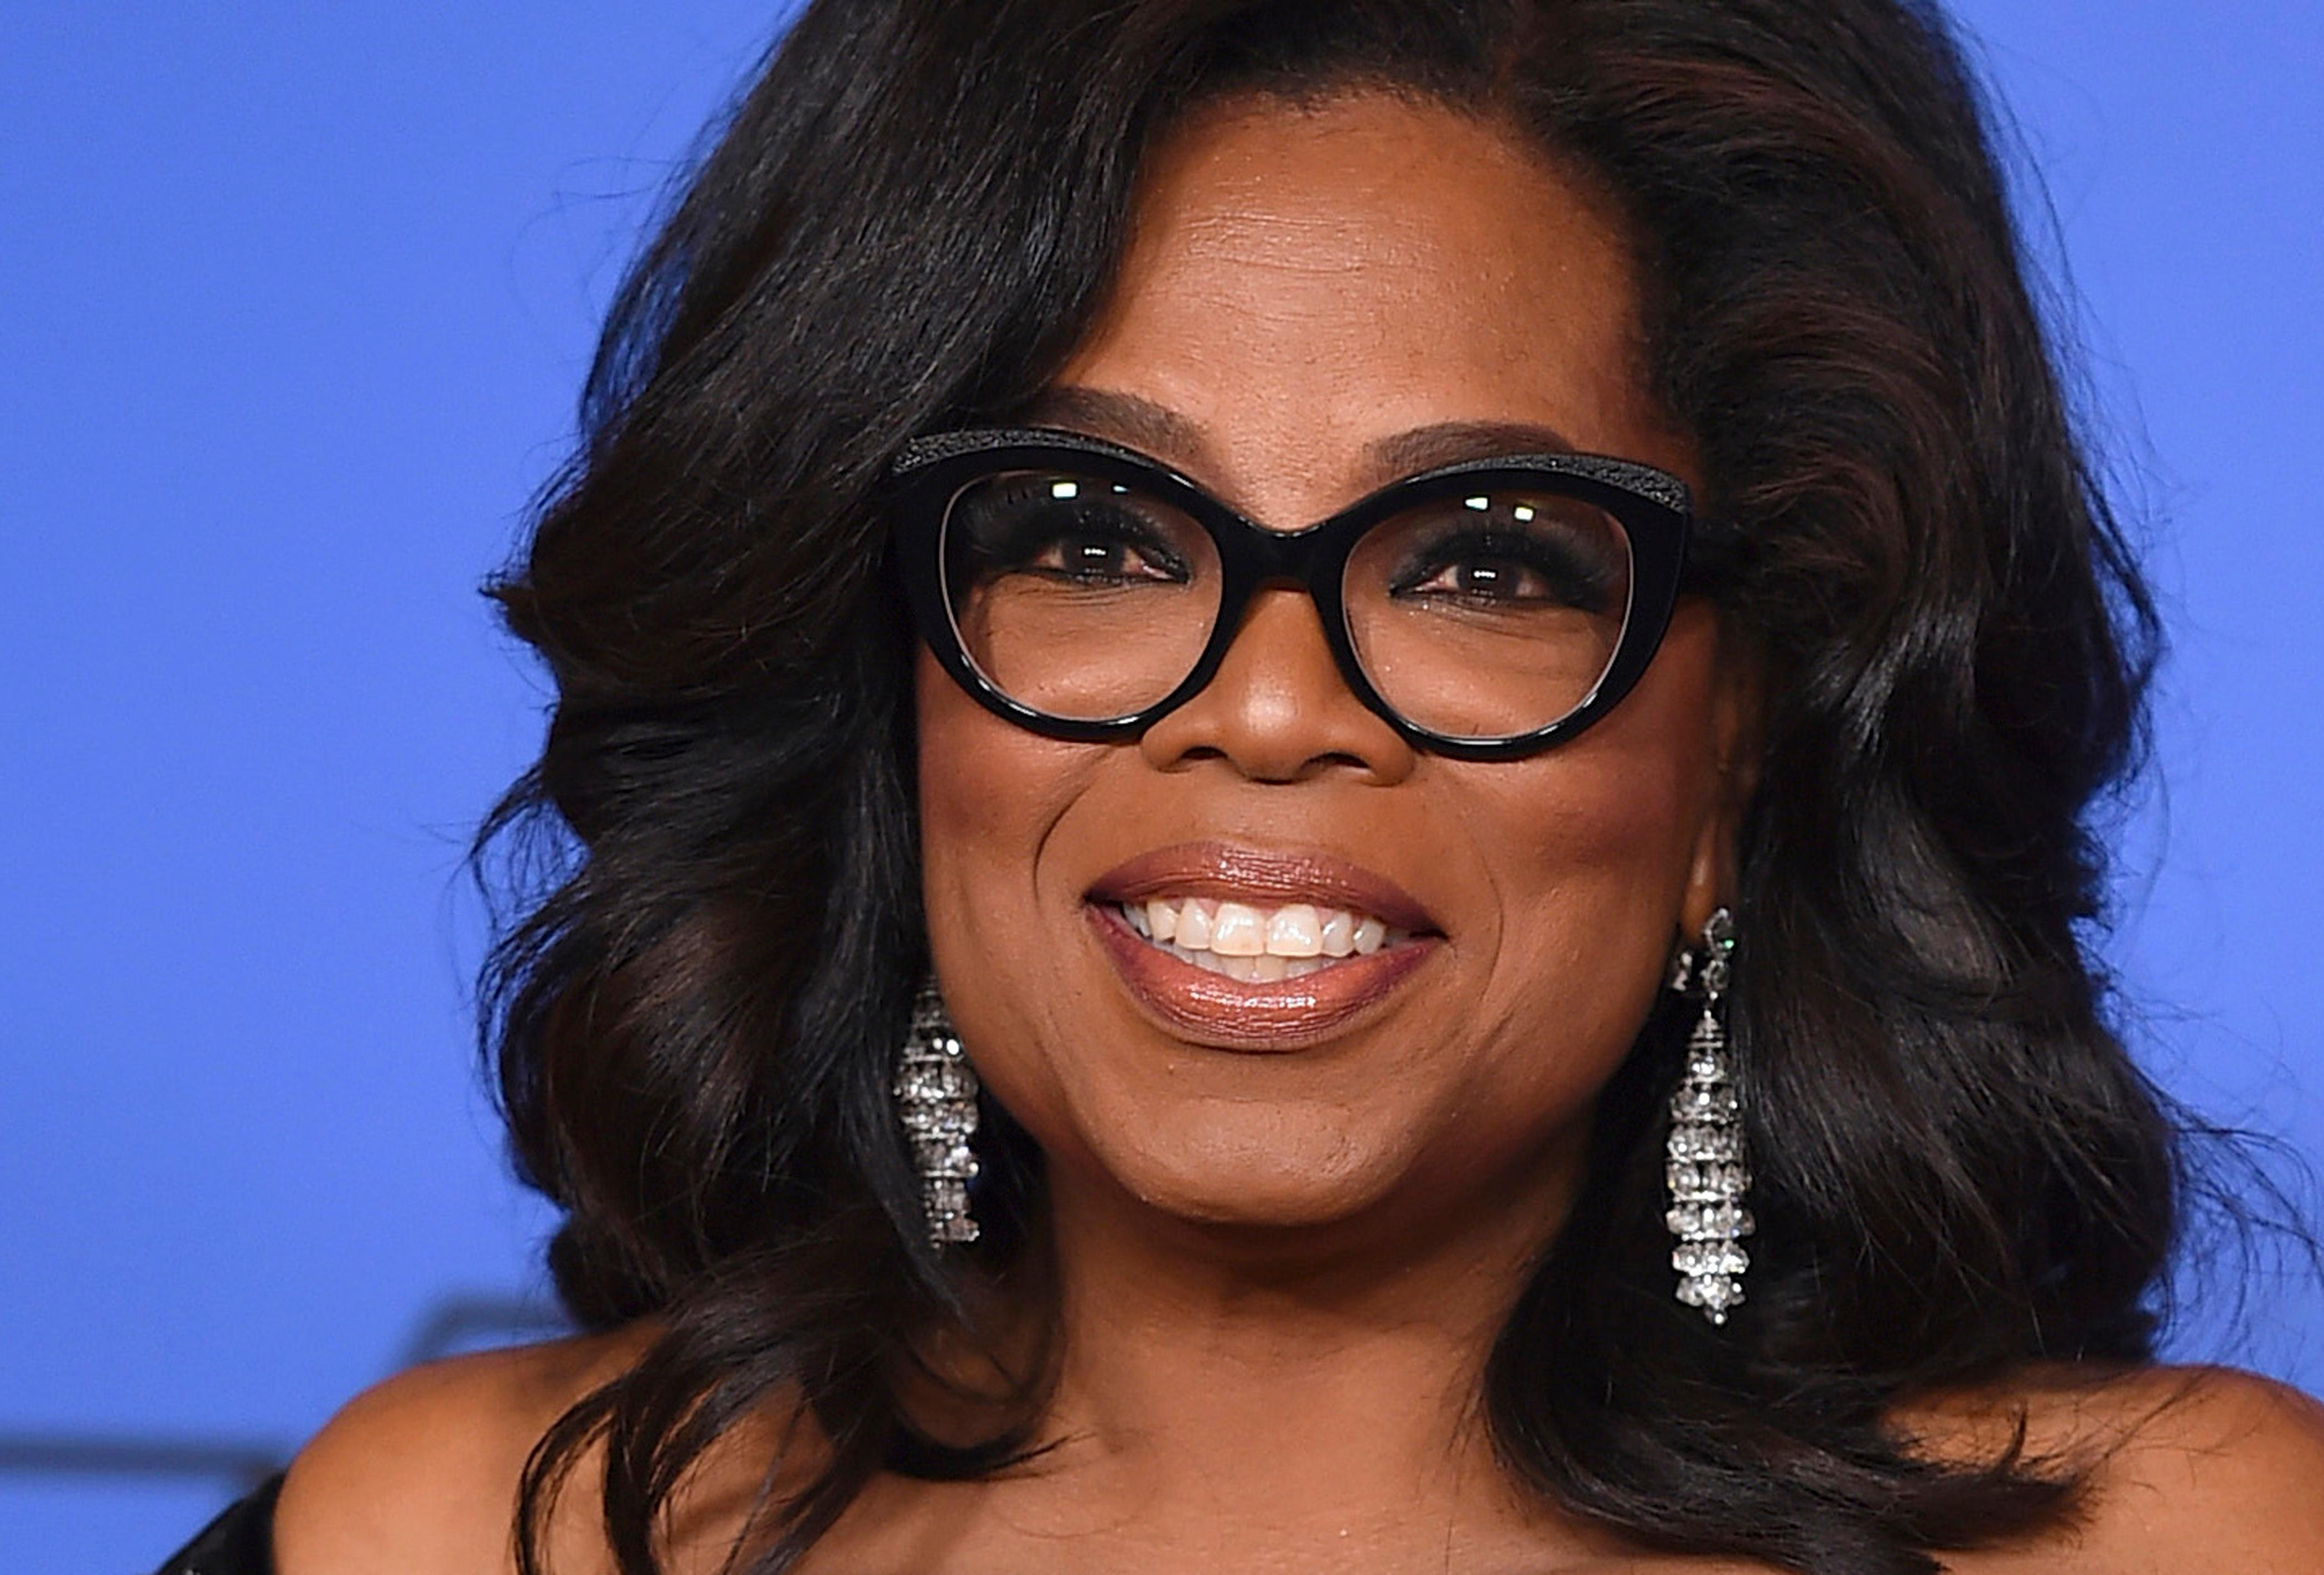 FILE - In this Jan. 7, 2018, file photo, Oprah Winfrey poses in the press room with the Cecil B. DeMille Award at the 75th annual Golden Globe Awards in Beverly Hills, Calif. In the final days in one of the nation's hottest governor's races, Oprah Winfrey and President Donald Trump, as well as former Presidents Barack Obama and Jimmy Carter and Vice President Mike Pence, are trying to put their imprint on the Georgia election. Winfrey joins Democratic nominee Stacey Abrams for two town hall-style events Thursday, the same day that Pence travels to the state for several rallies with Republican Brian Kemp. (Photo by Jordan Strauss/Invision/AP, File)